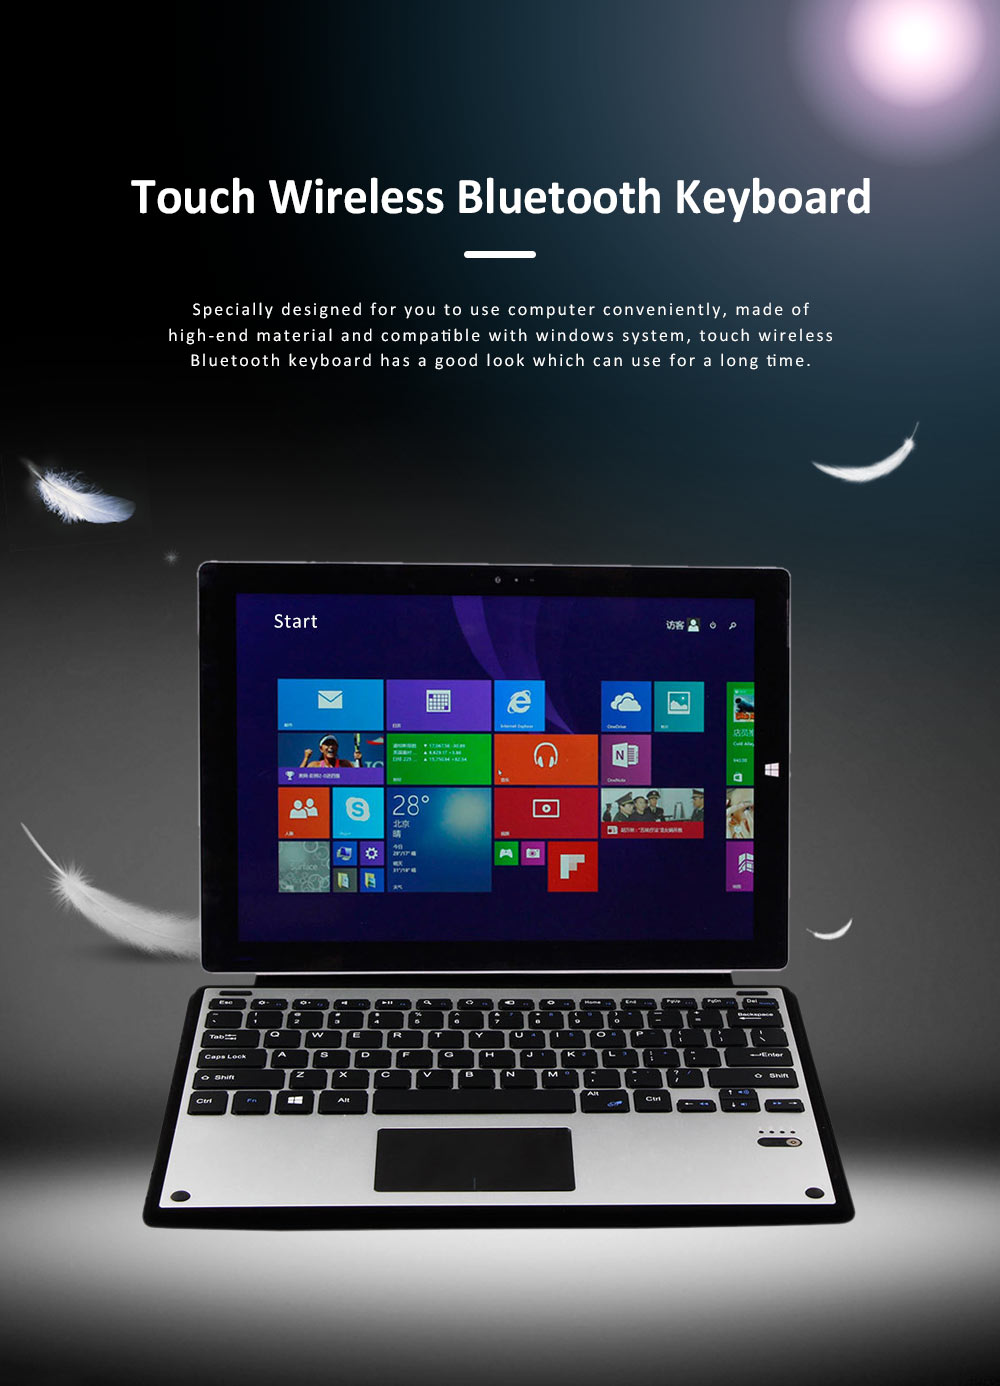 Ultra-thin Touch Control Wireless Bluetooth Keyboard for Microsoft Surface Pro3 Pro 4, Office Home Use Aluminum Alloy Wireless Keyboard 12.2 inch  0